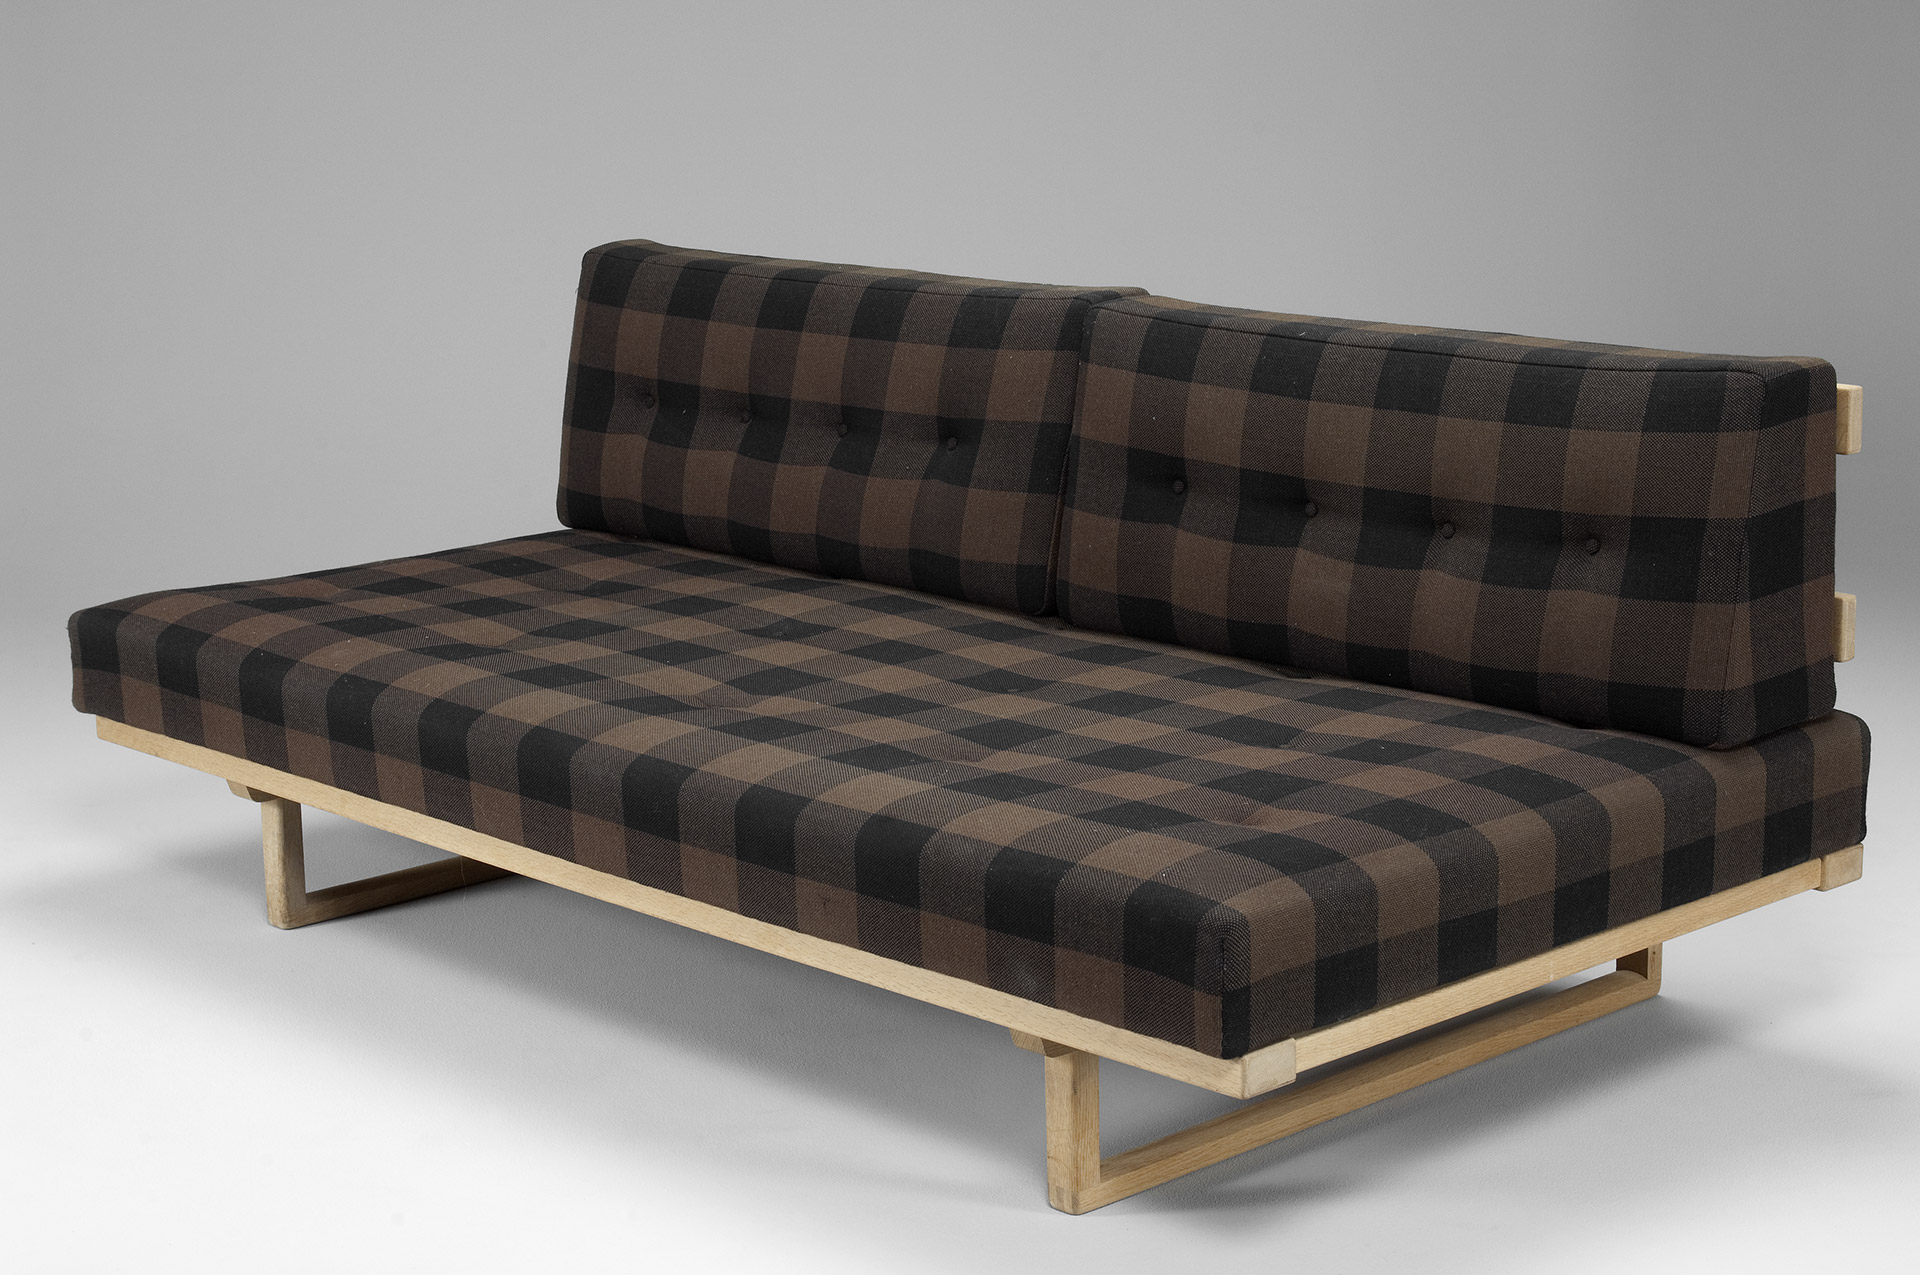 Jacksons Sofa Daybed B Rge Mogensen